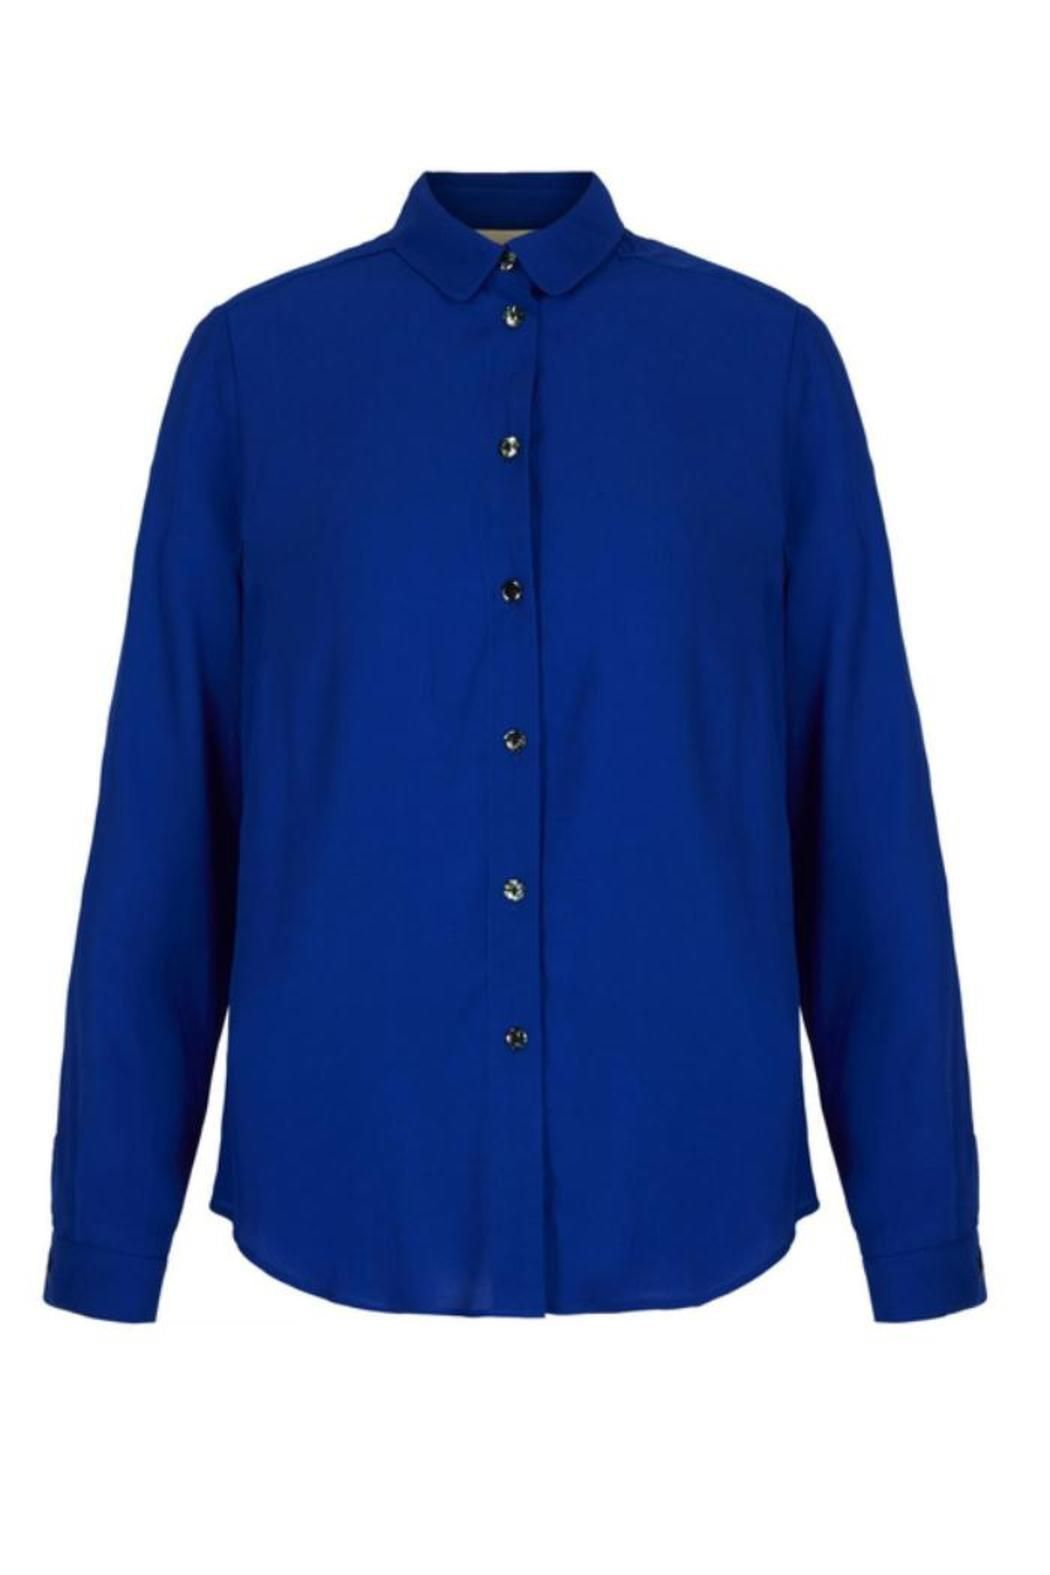 This shirt will be one of the most versatile pieces in your wardrobe. It features long sleeves, shell buttons, and a button up front. Team with everything from skirts to jeans for easy, bang on trend style. Machine washable.    Measures: 63 cm    Royal Blue Shirt by Yumi. Clothing - Tops - Blouses & Shirts Clothing - Tops - Long Sleeve London